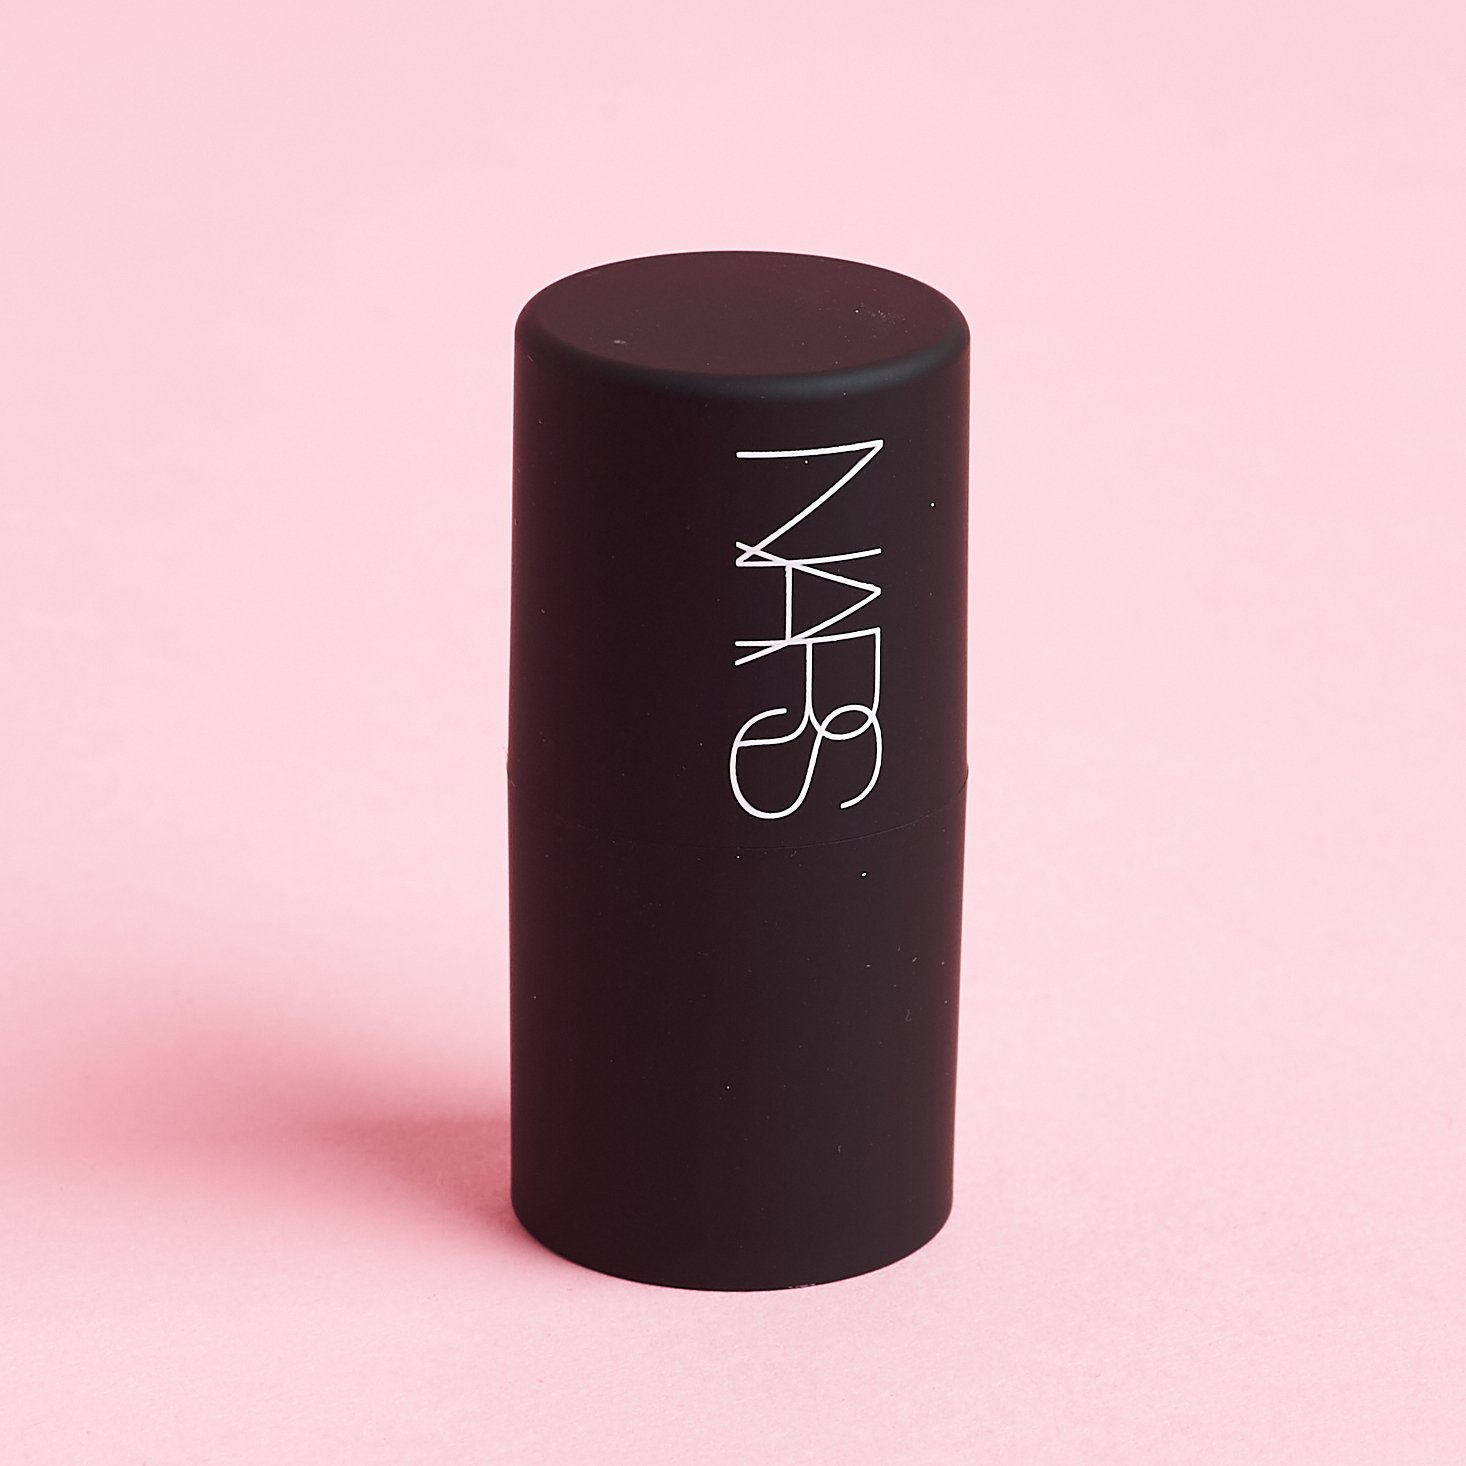 Nars The Multiple Stick in Orgasm